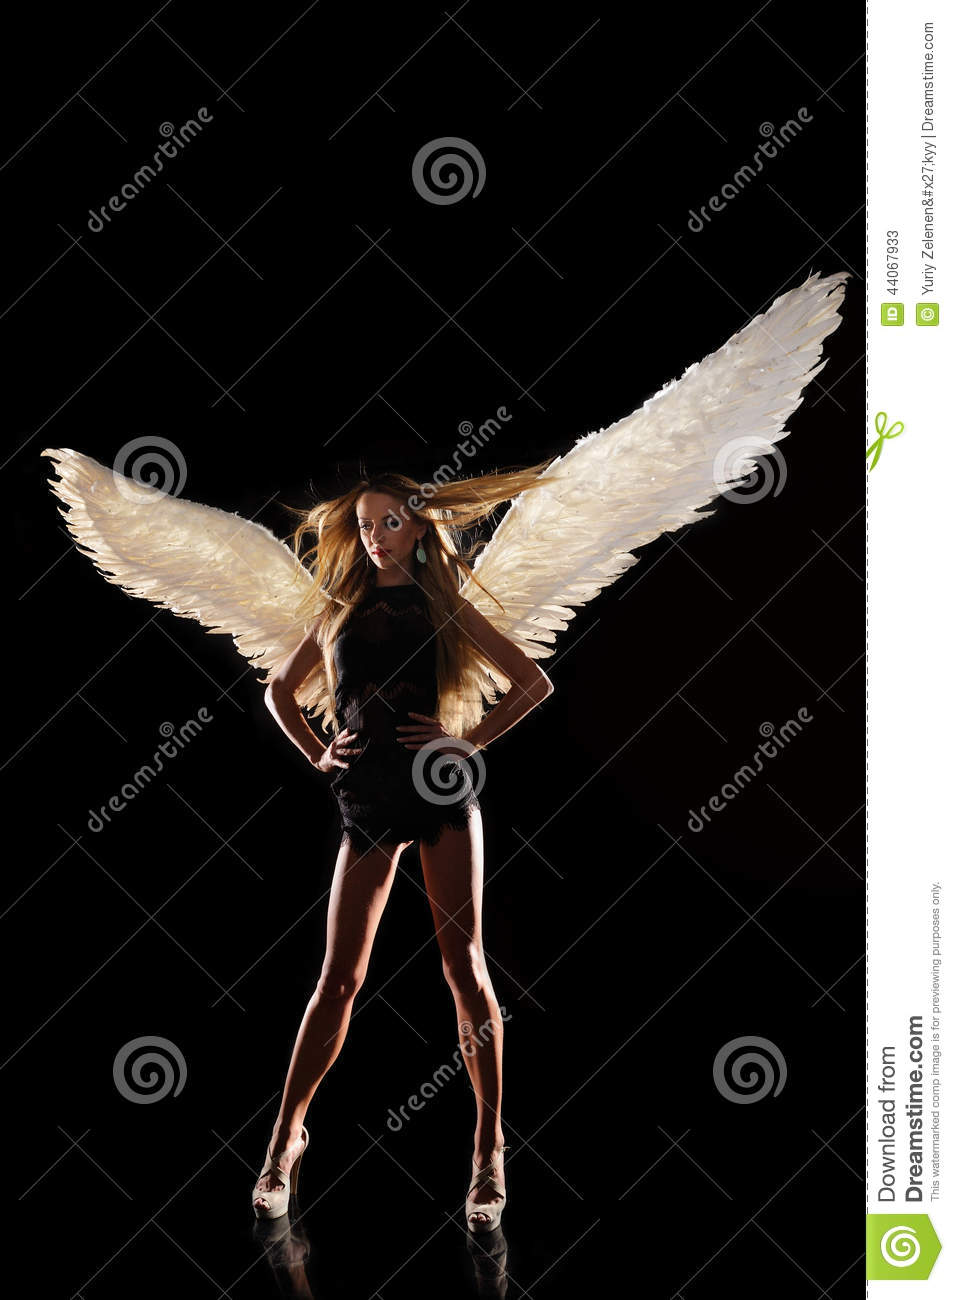 angel wings black background - photo #40